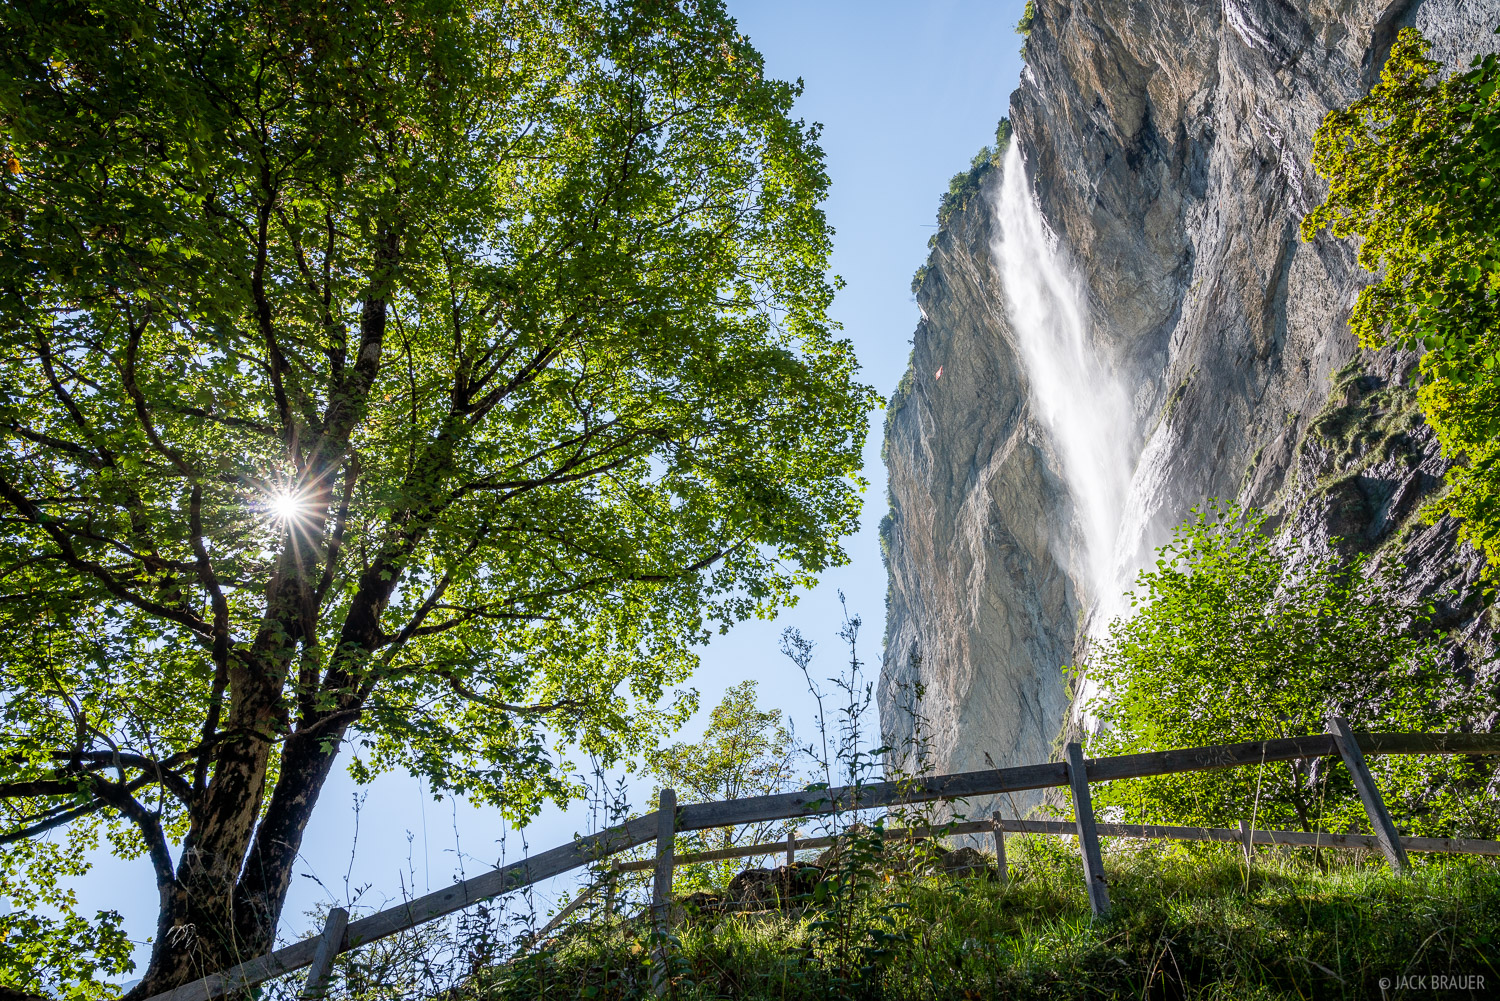 Bernese Alps, Lauterbrunnen, Lauterbrunnental, Staubbachfall, Switzerland, waterfall, Bernese Oberland, photo